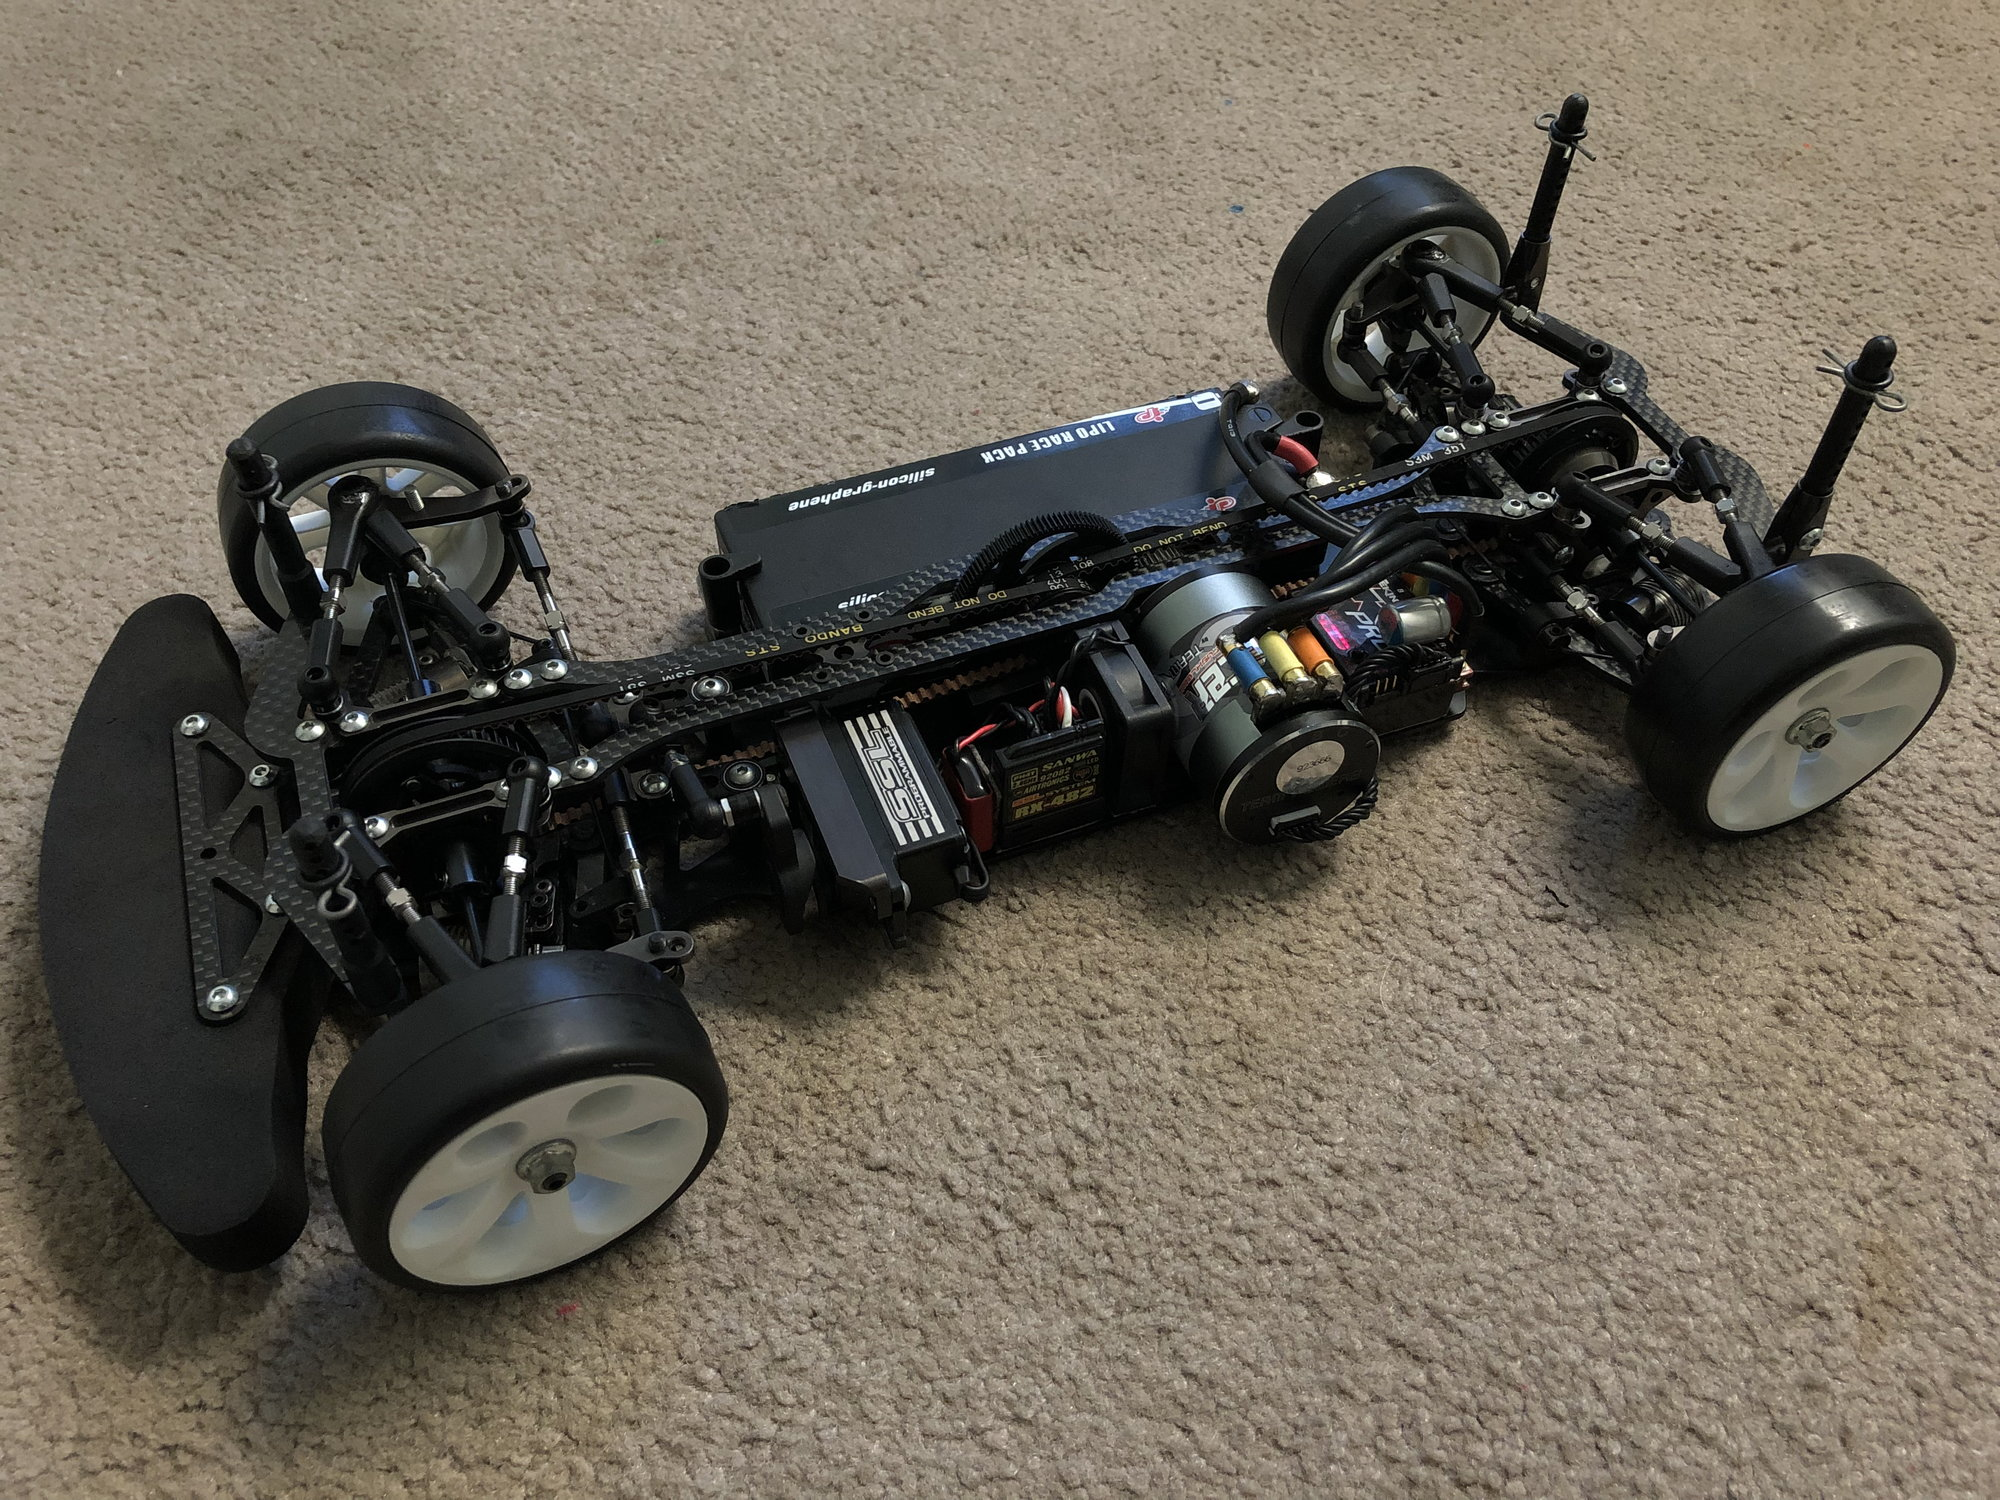 Awesomatix A800 - Page 240 - R/C Tech Forums